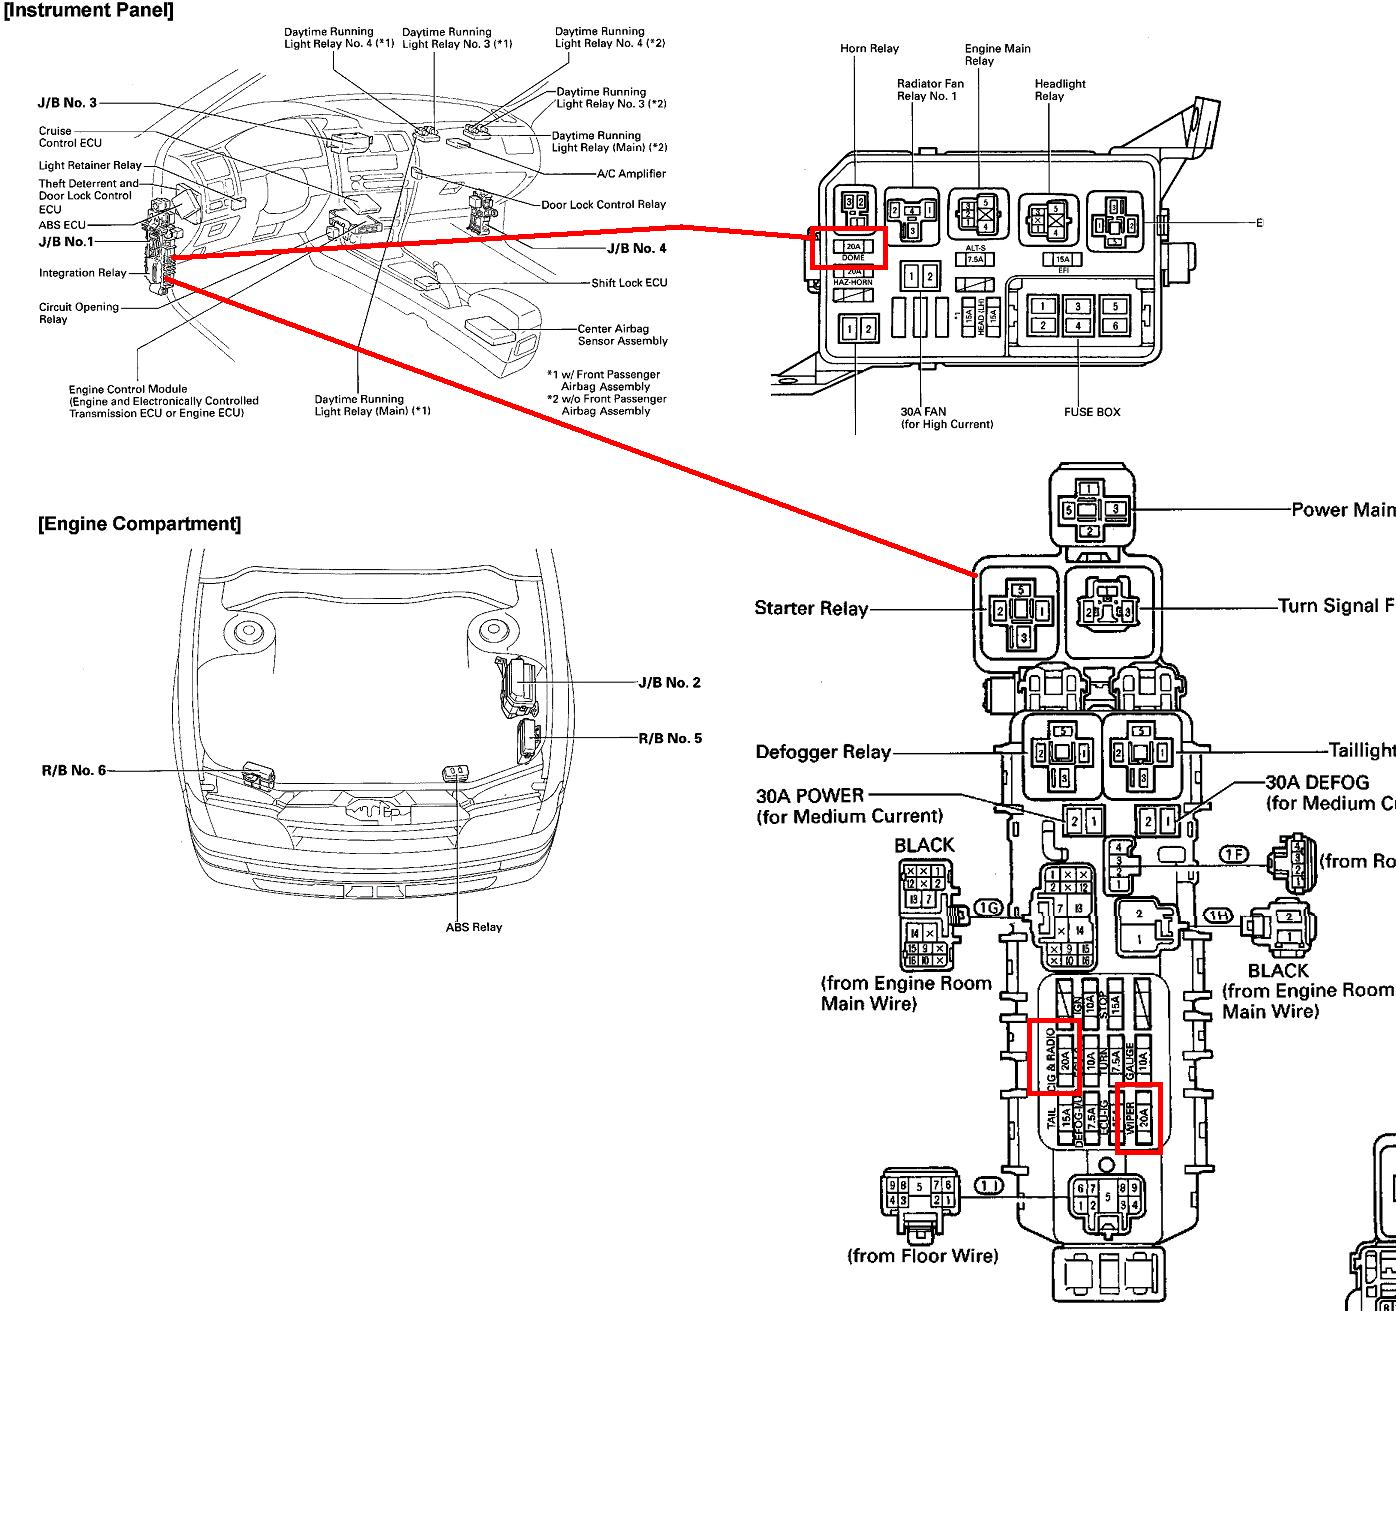 hight resolution of 95 toyota corolla fuse box location wiring diagrams mon 95 corolla fuse box location 1995 toyota